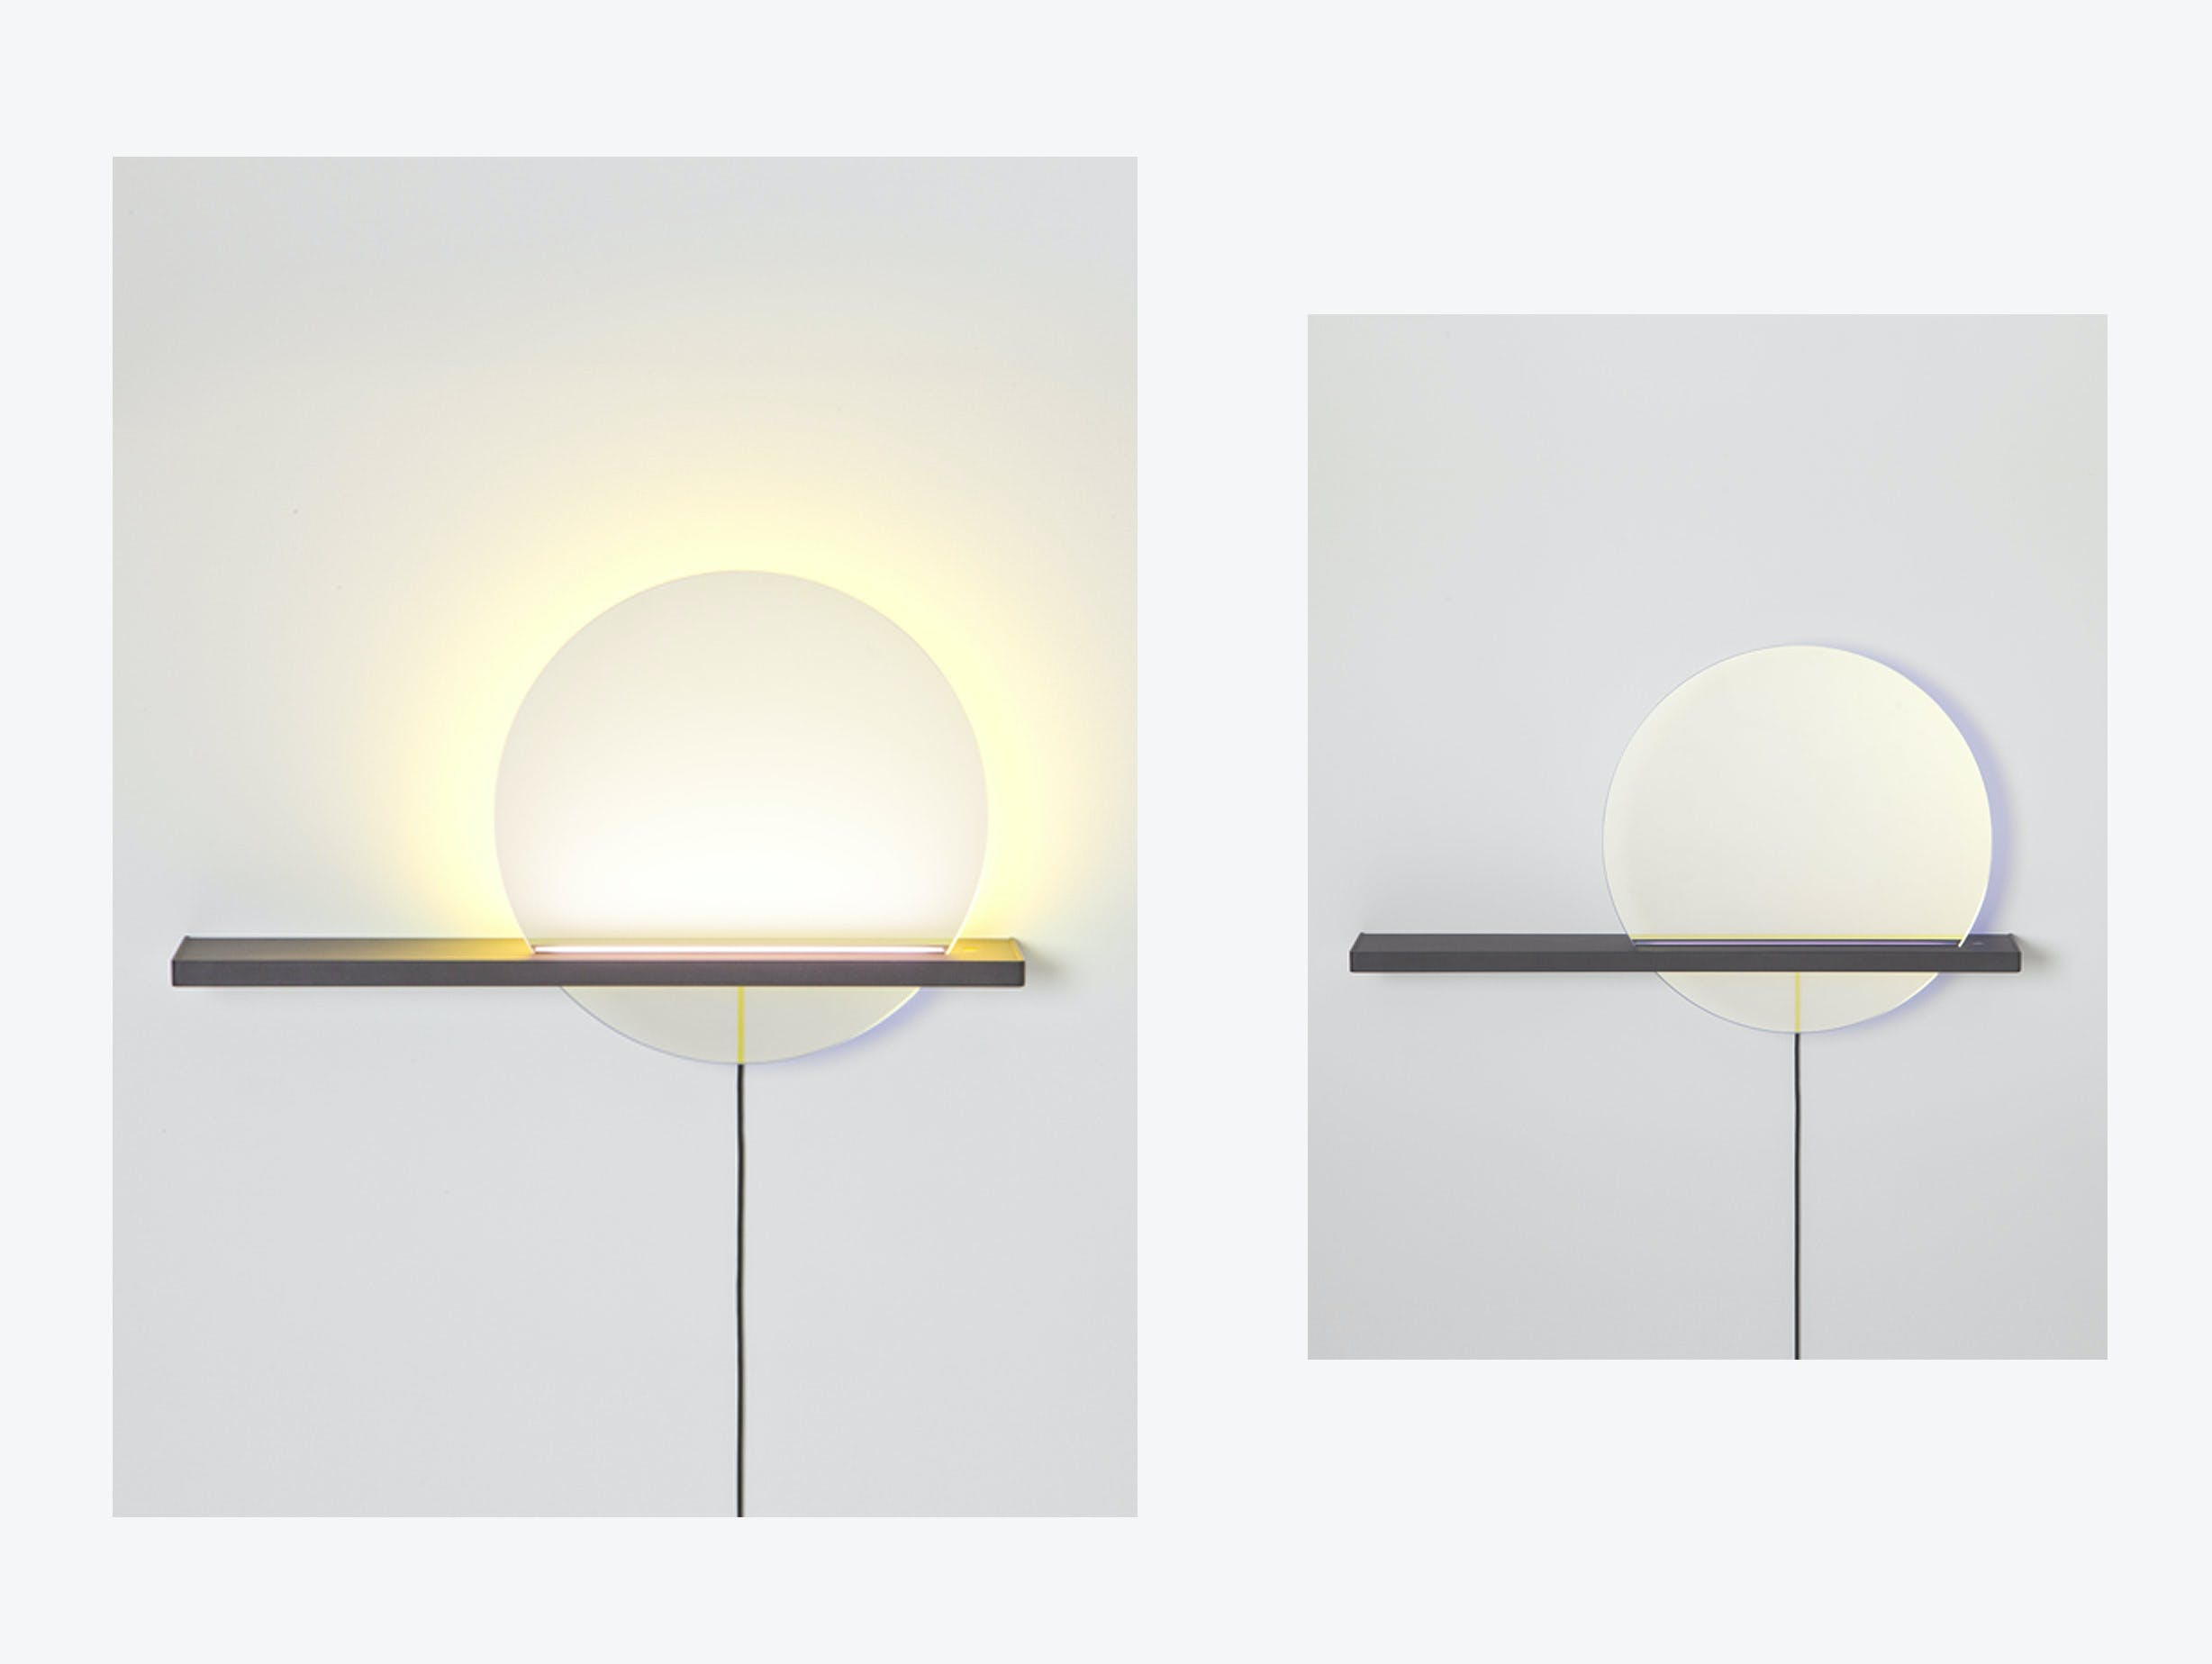 Studio Wm Designers Lucent Mirror Light image